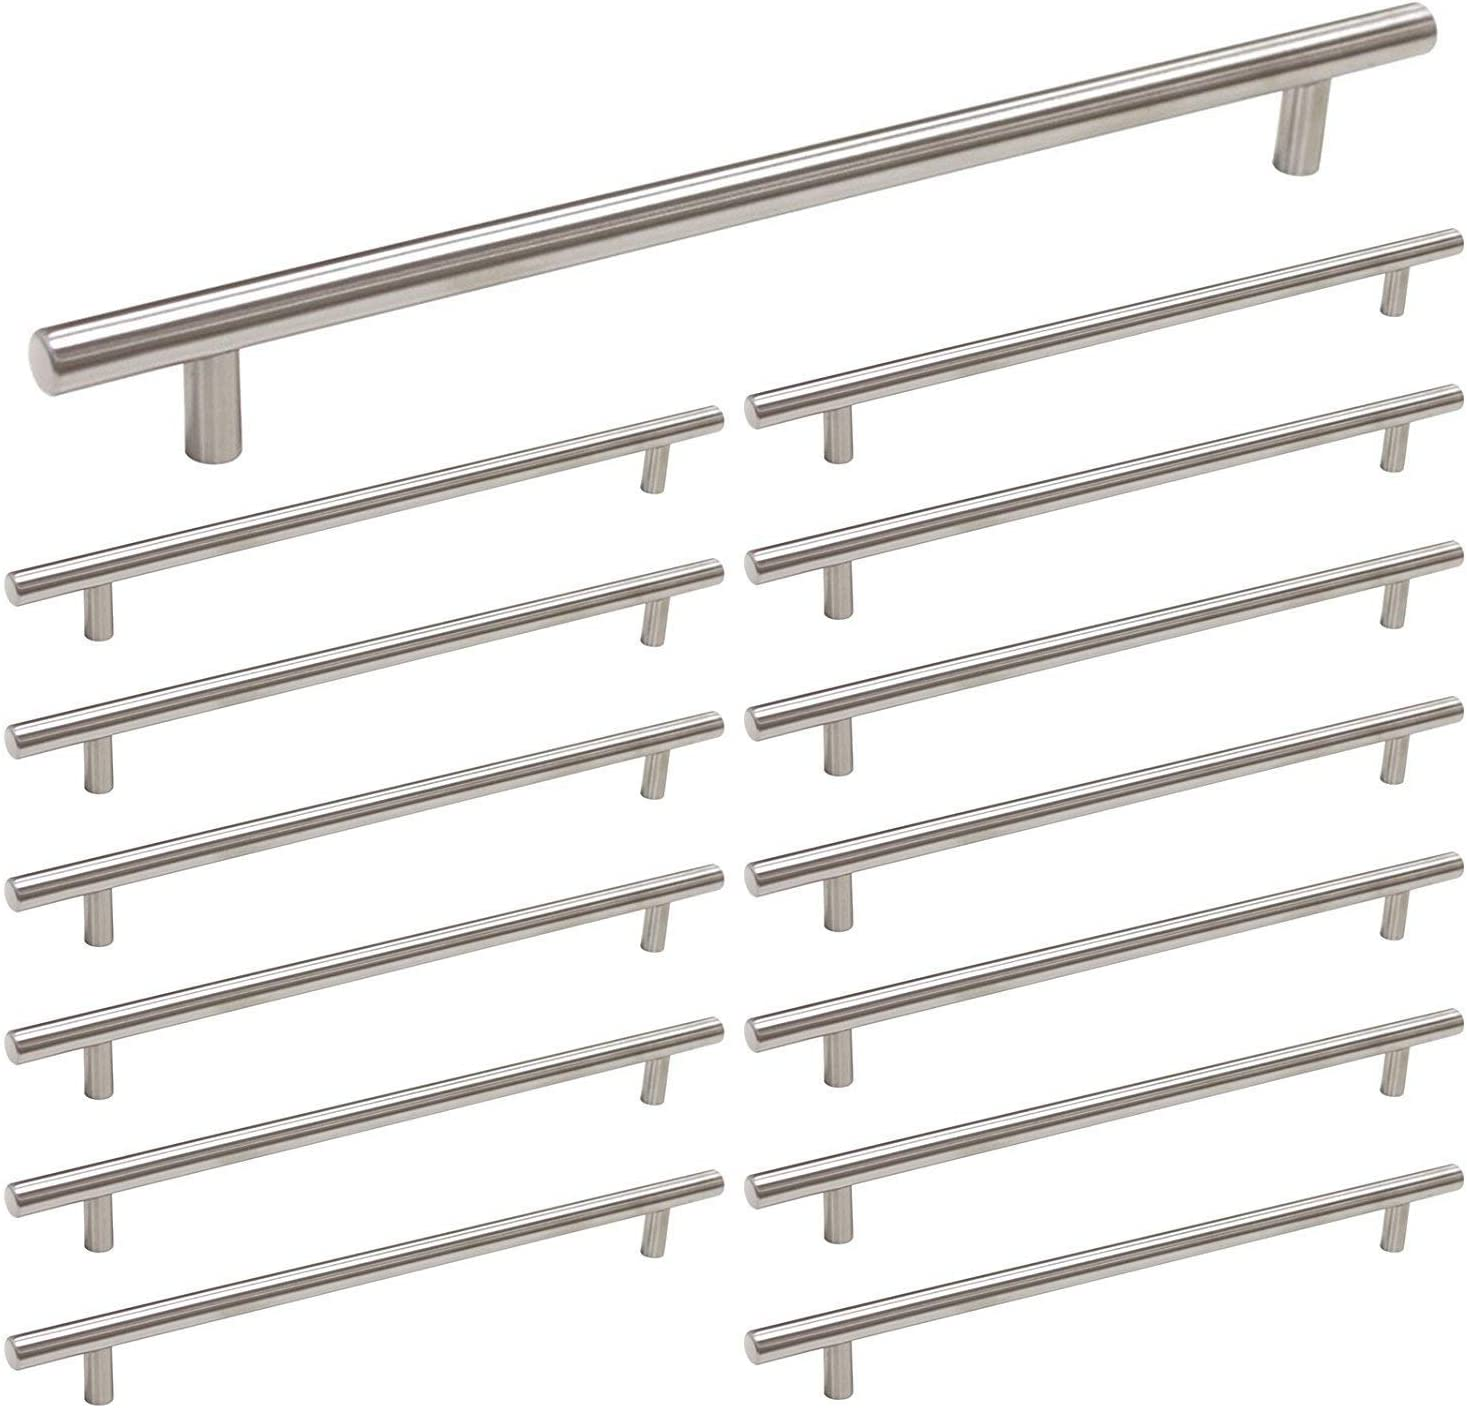 LS201BSS LONTAN Handles for Chest of Drawers Stainless Steel Cupboard Handles 160mm Cabinet Handles 5 Pack